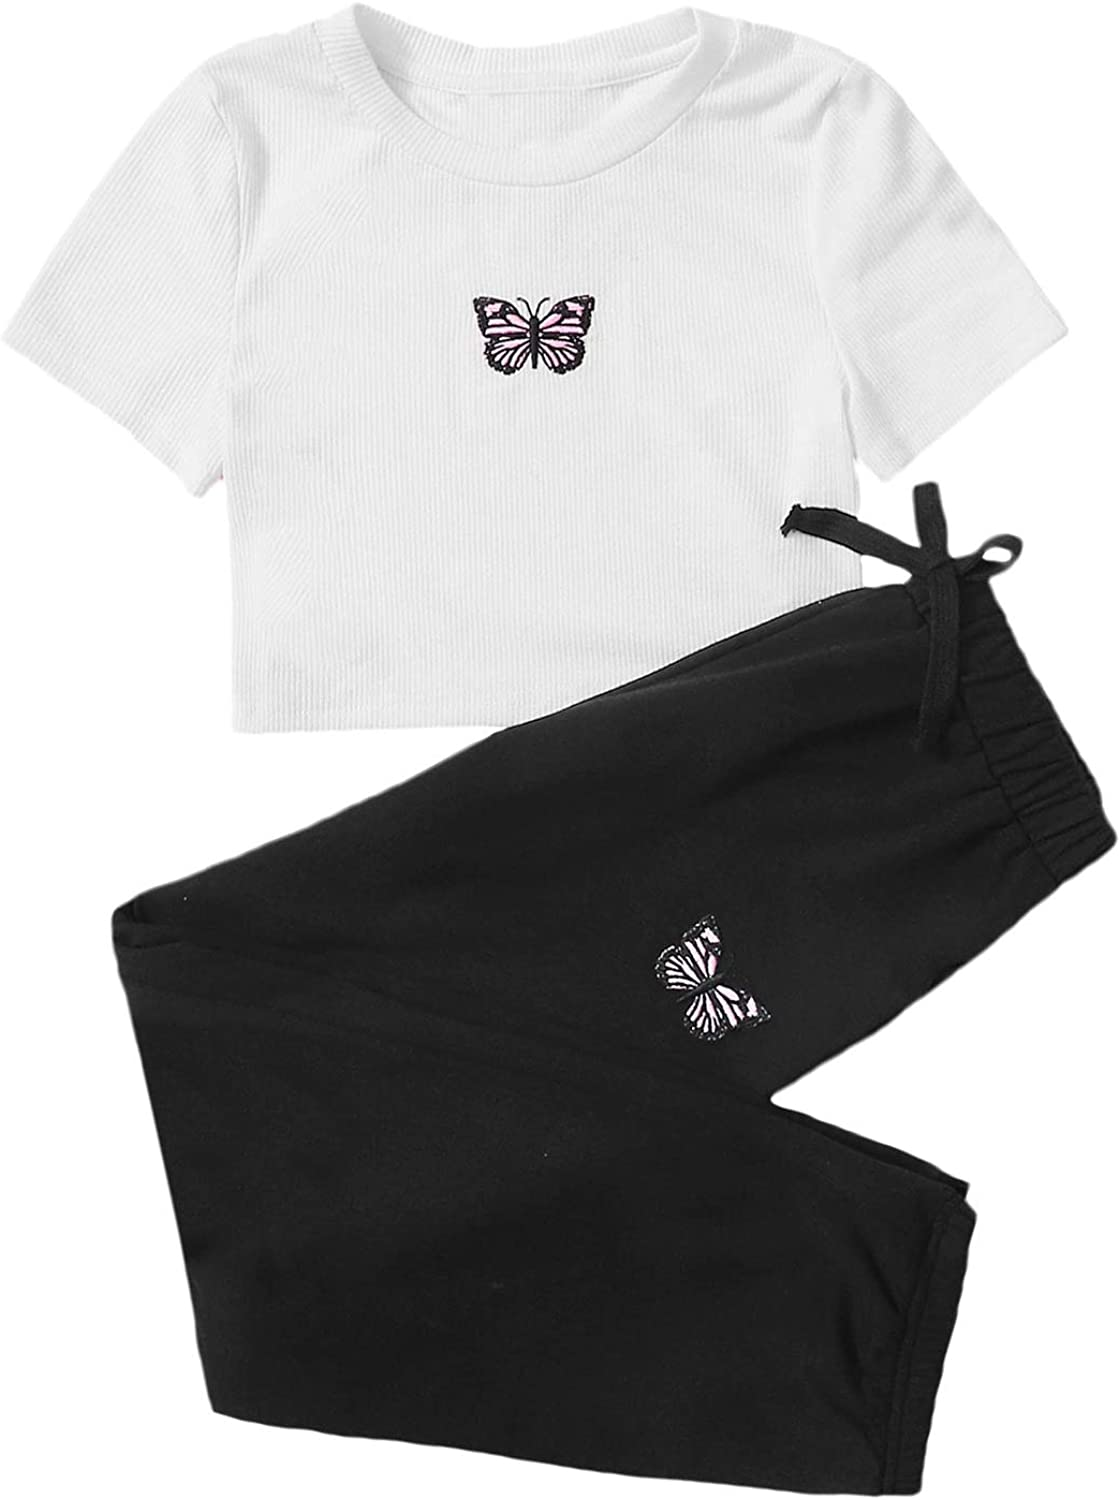 SOLY HUX Girl's 2 Piece Outfits Butterfly Embroidered Crop Top and Pants Set: Clothing